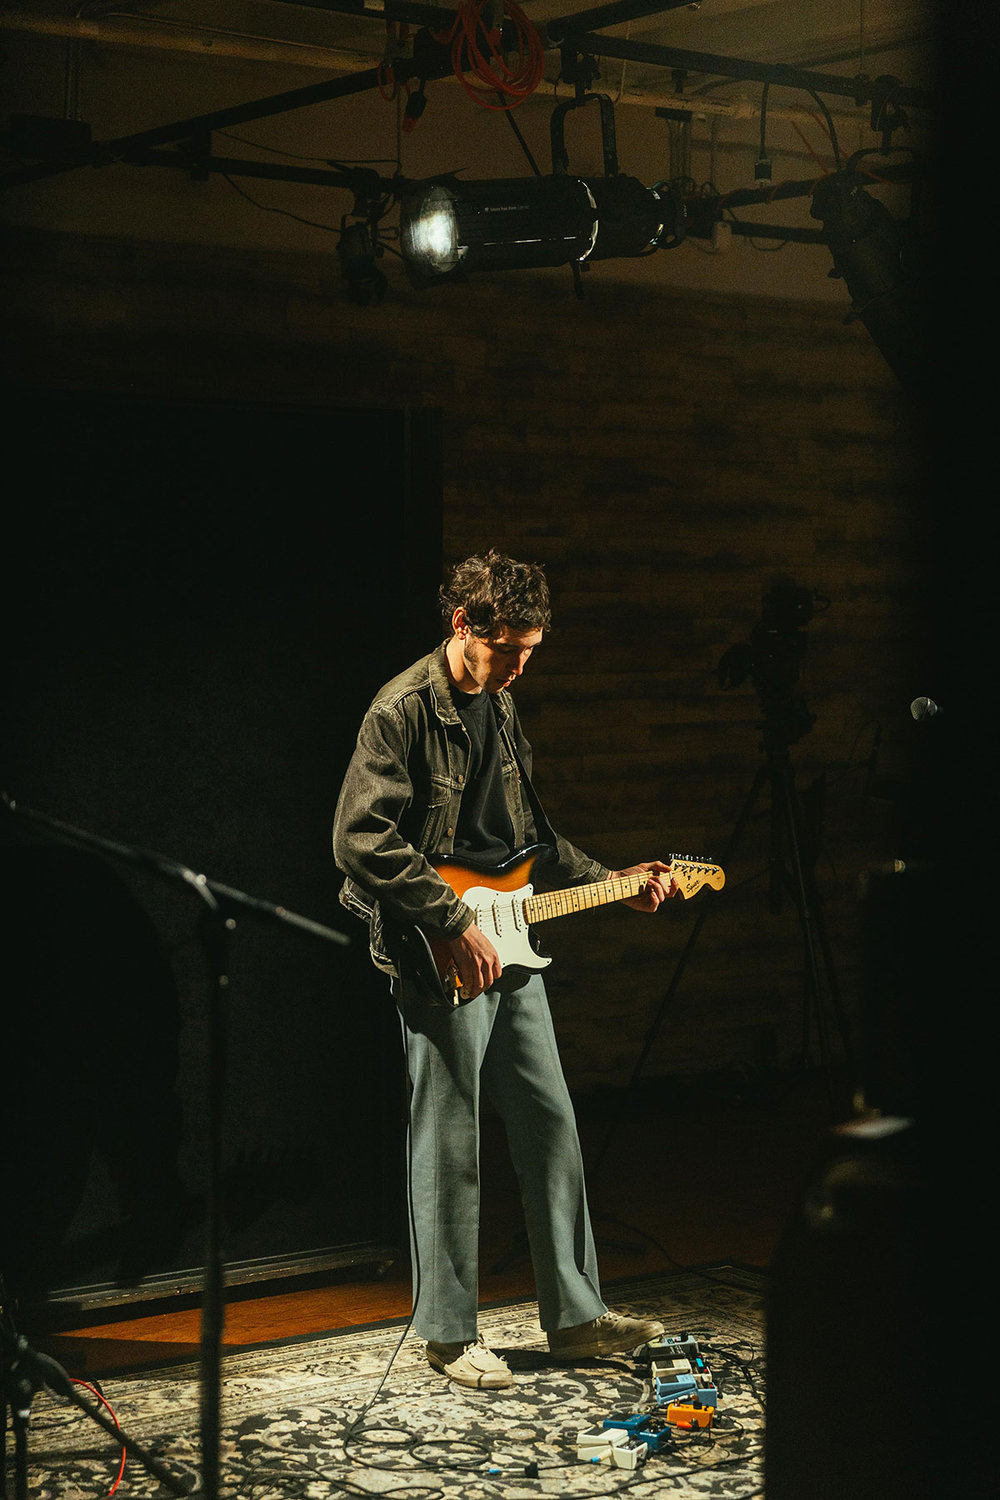 Be-Forest-on-Audiotree-Live-28.jpg